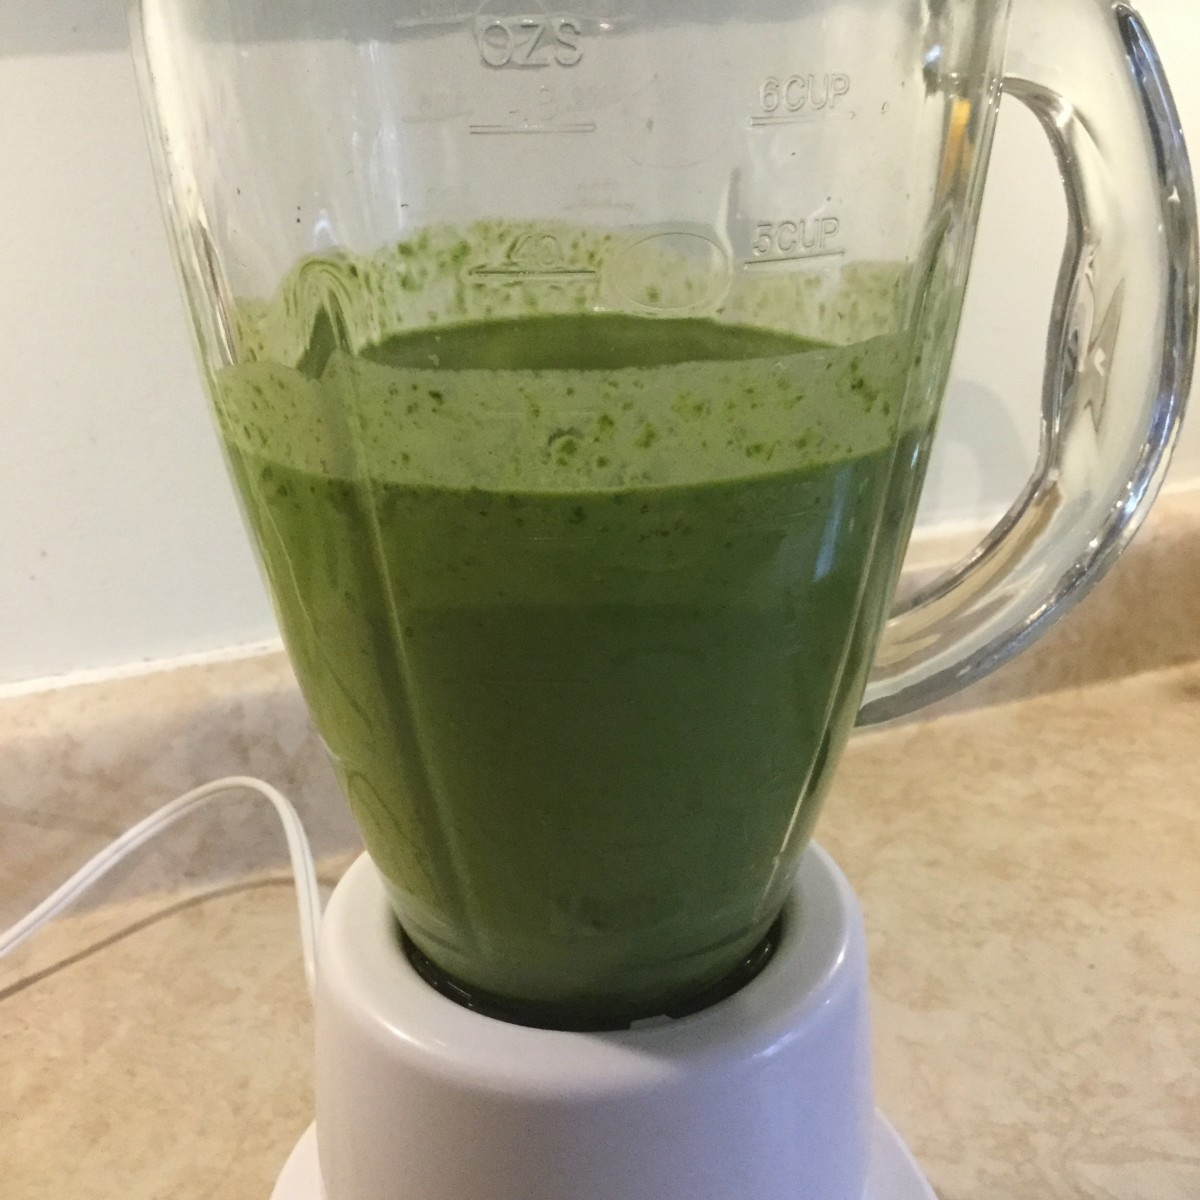 Step 2: Add the wet ingredients to the blender and puree. If your blender is anything like mine, you may have to add the spinach in batches.